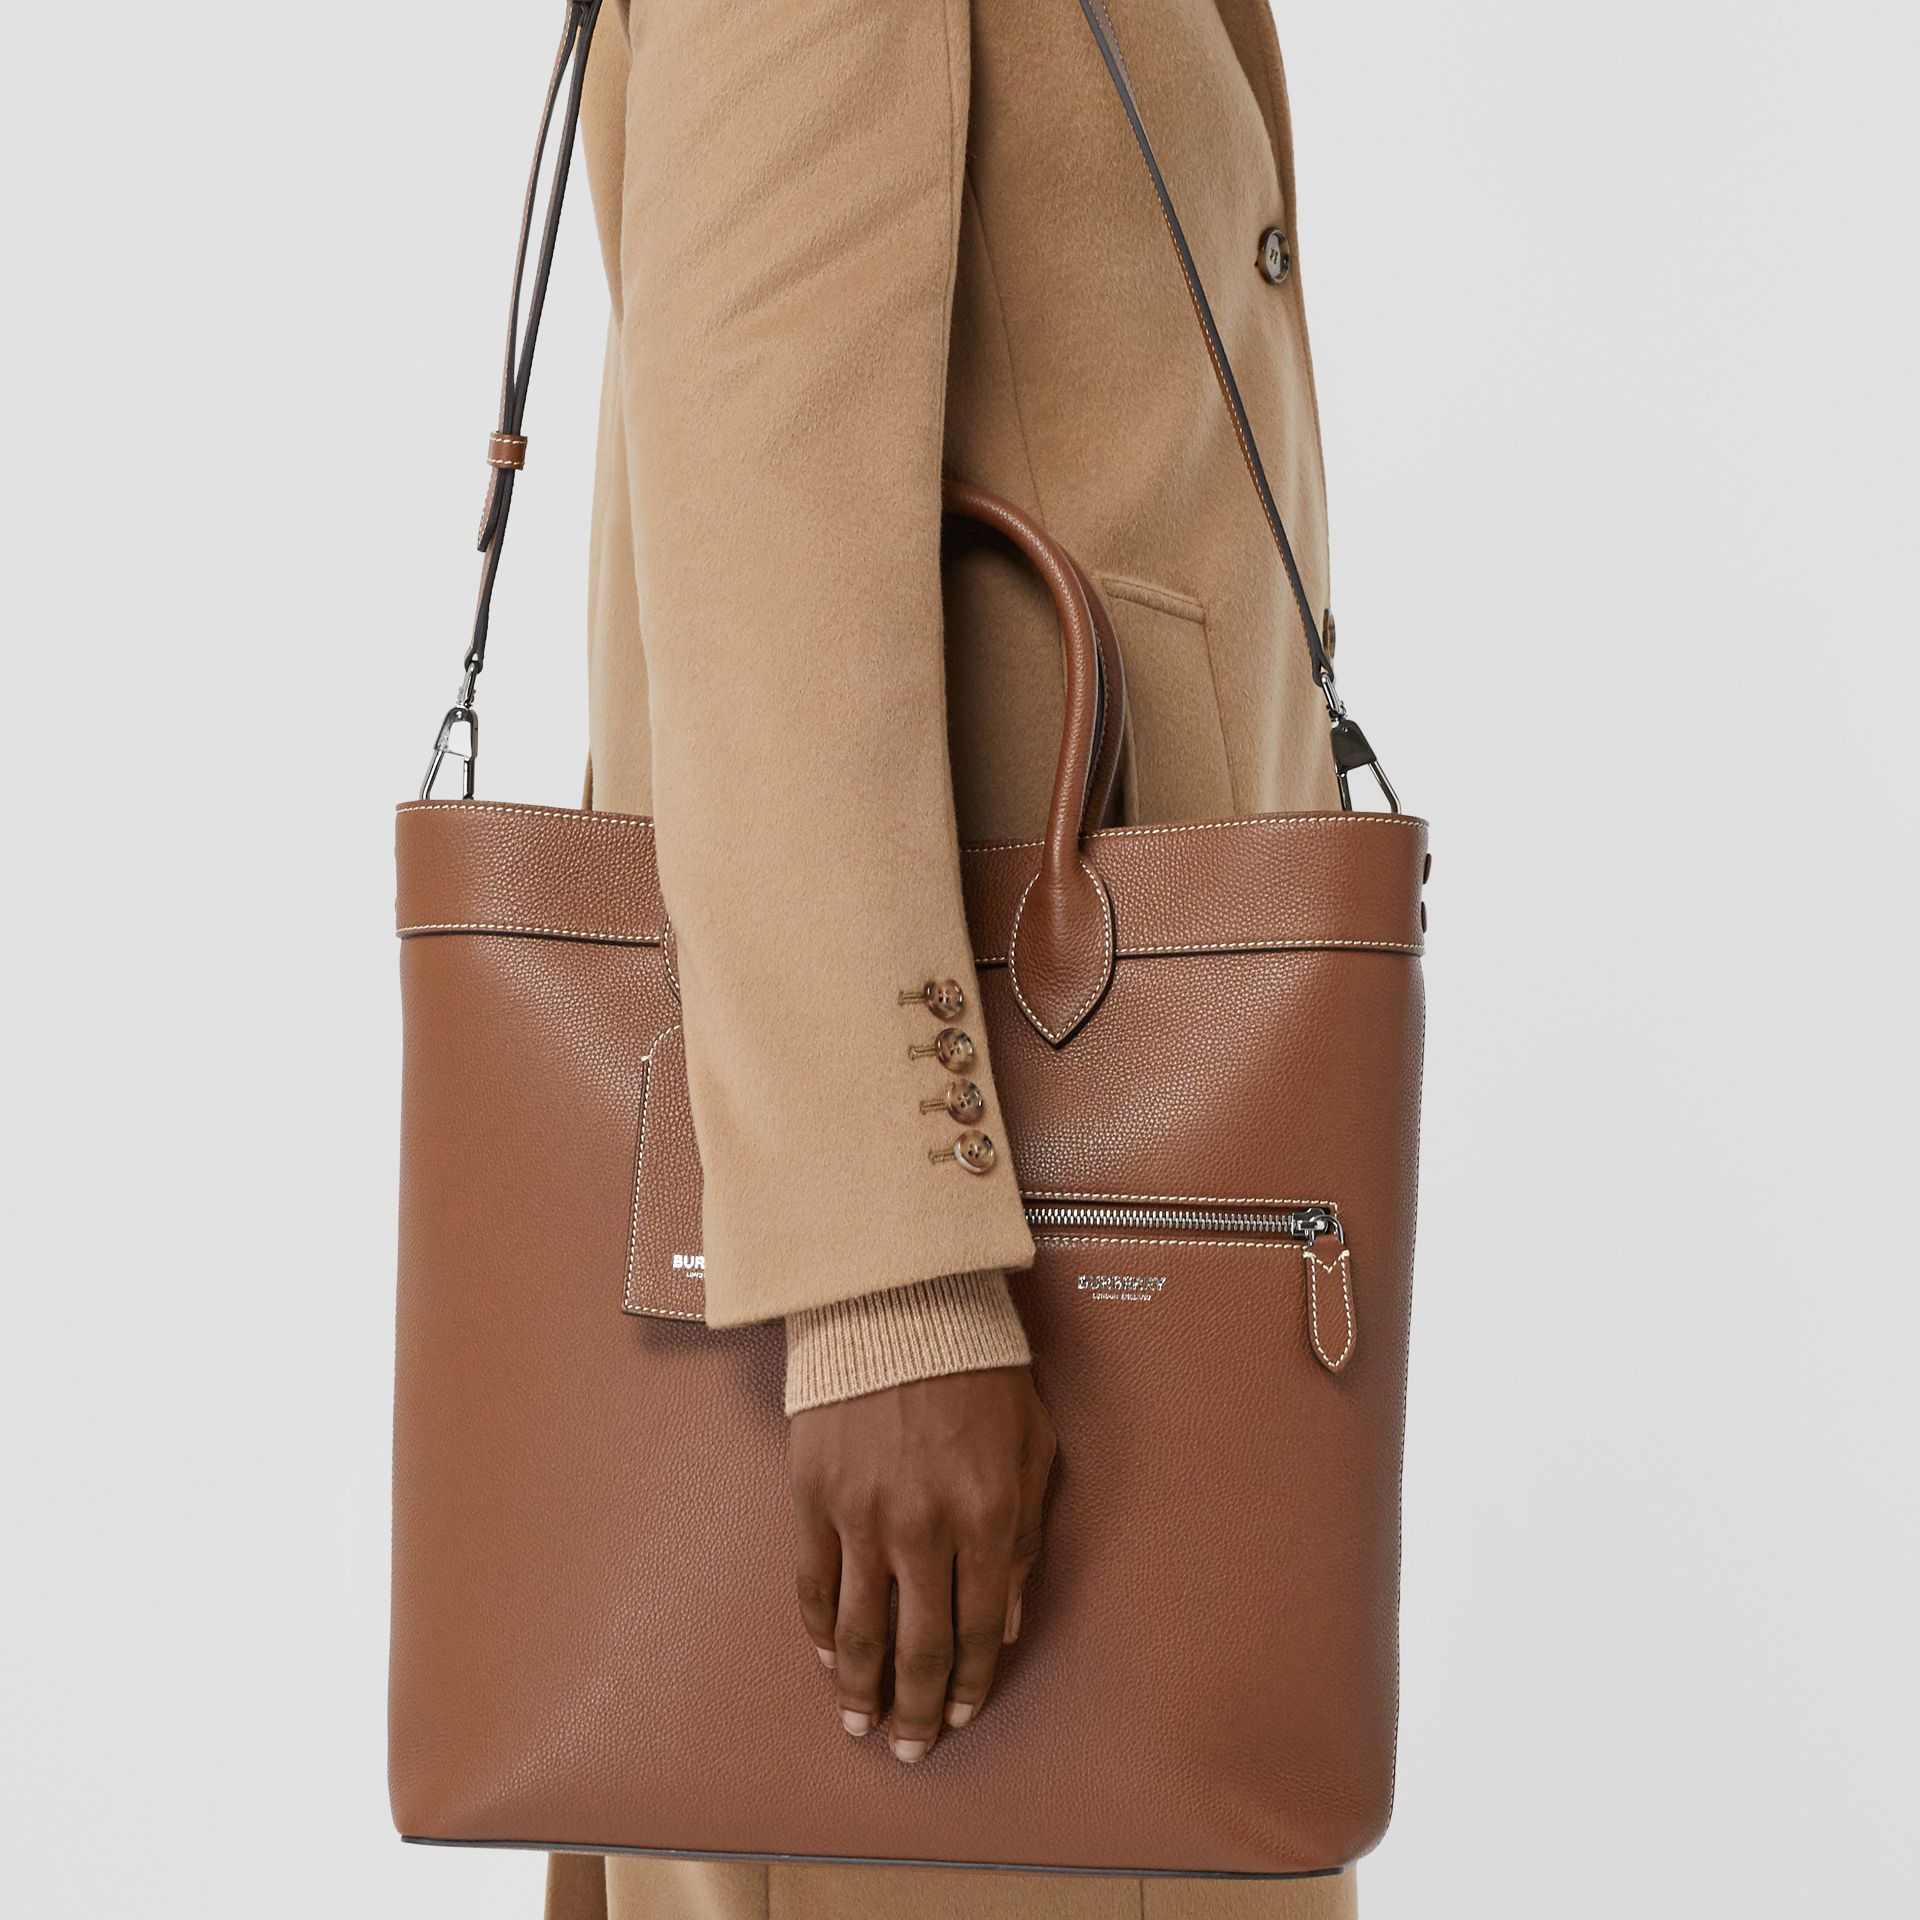 Grainy Leather Tote in Tan | Burberry - gallery image 2